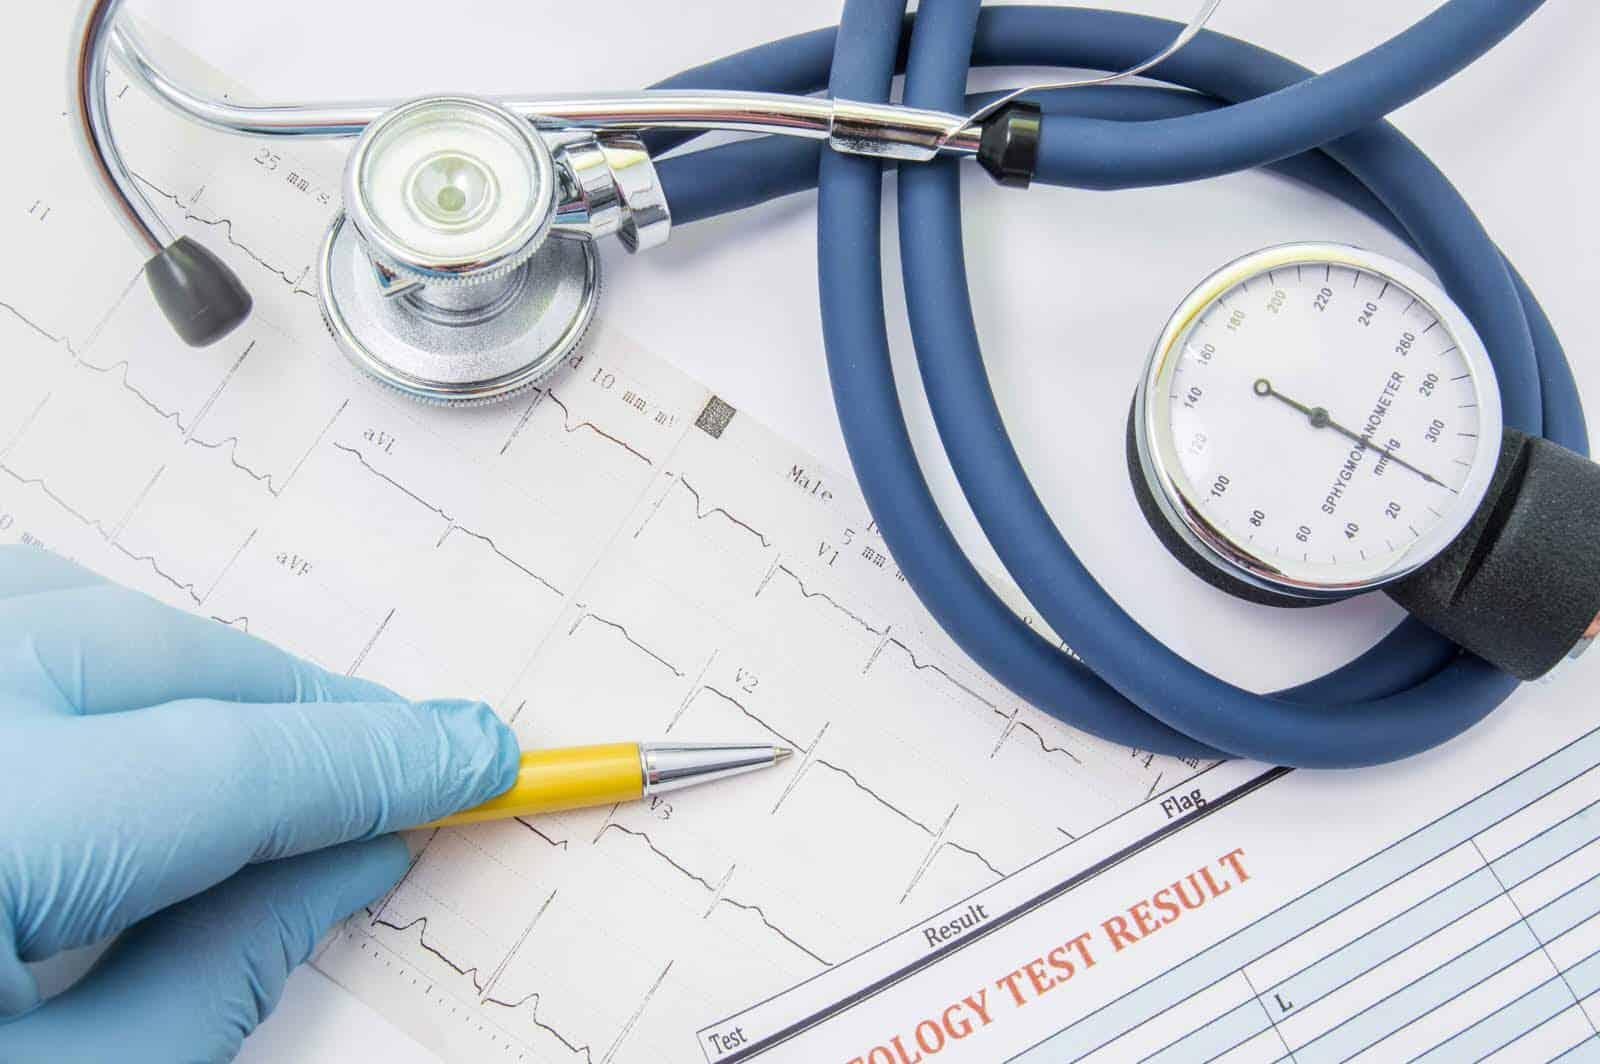 Test and diagnostic instruments